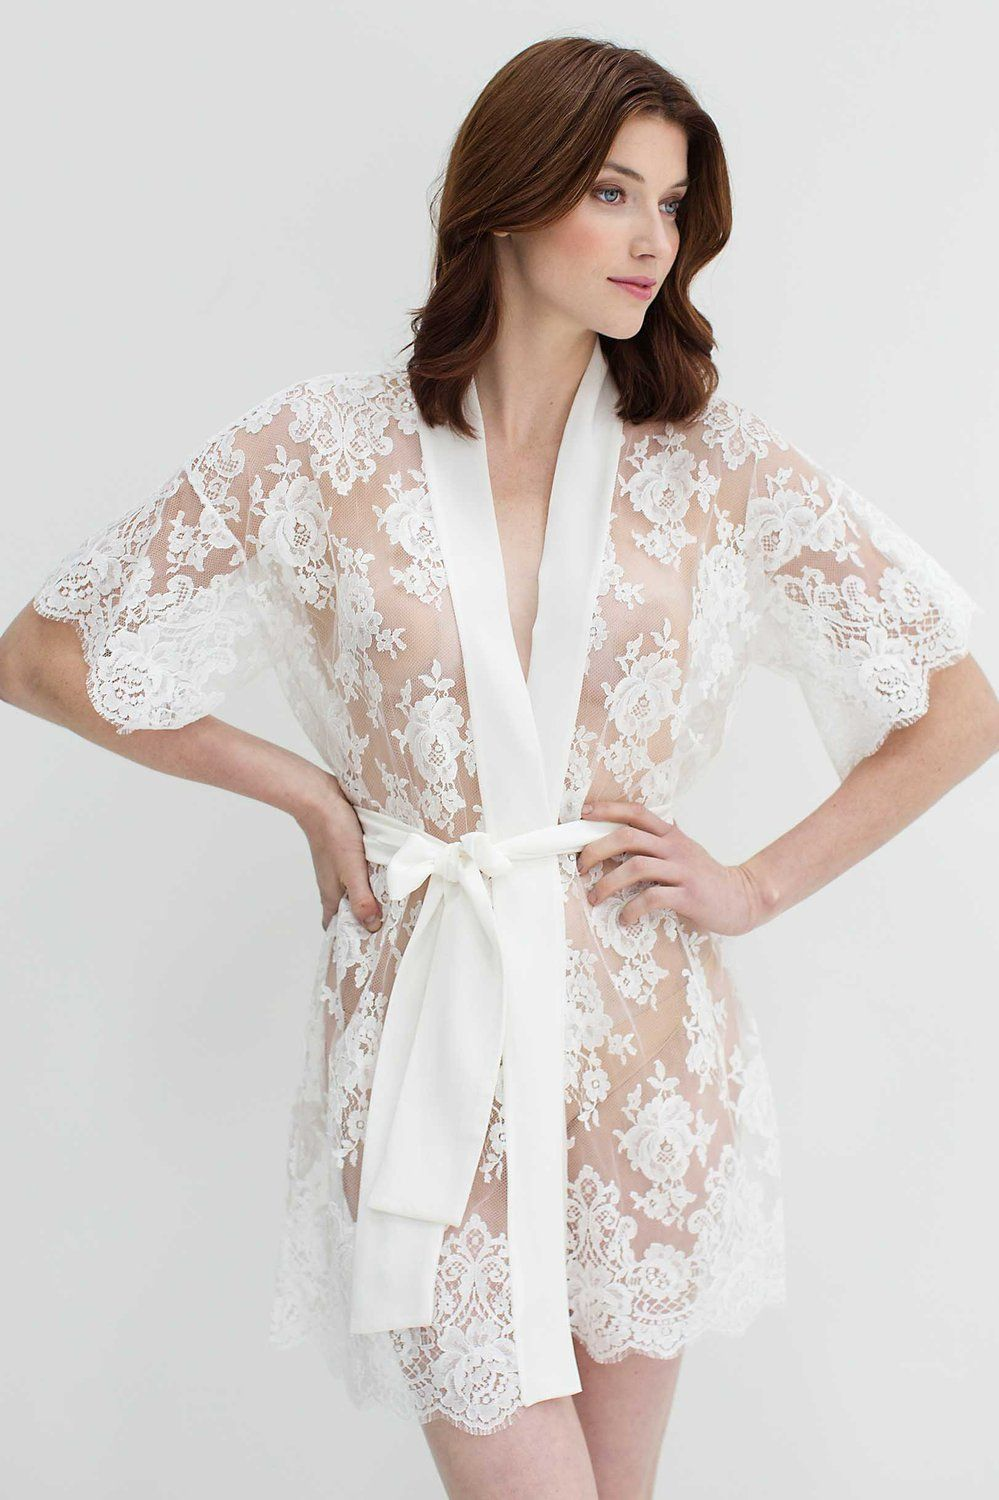 9b2759cd Rosa French lace kimono robe in Off-white - style #R97SS | XOXO ...